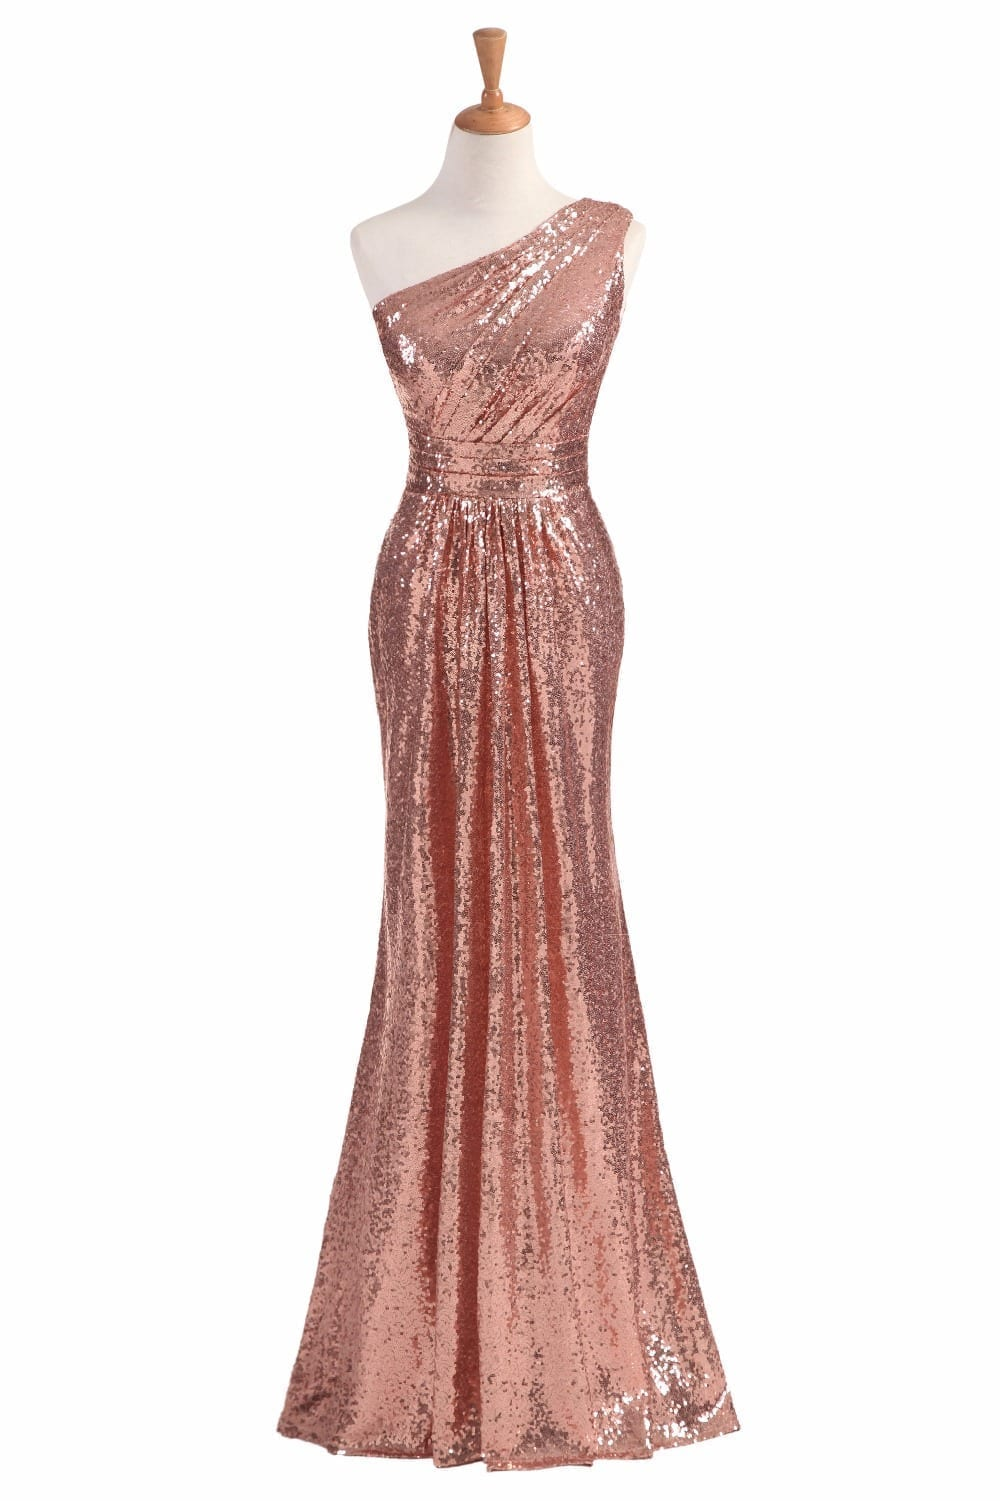 Rose Gold Wine Red Blue One-shoulder Colorful Sparkly Long Sequins Bridesmaid Dress